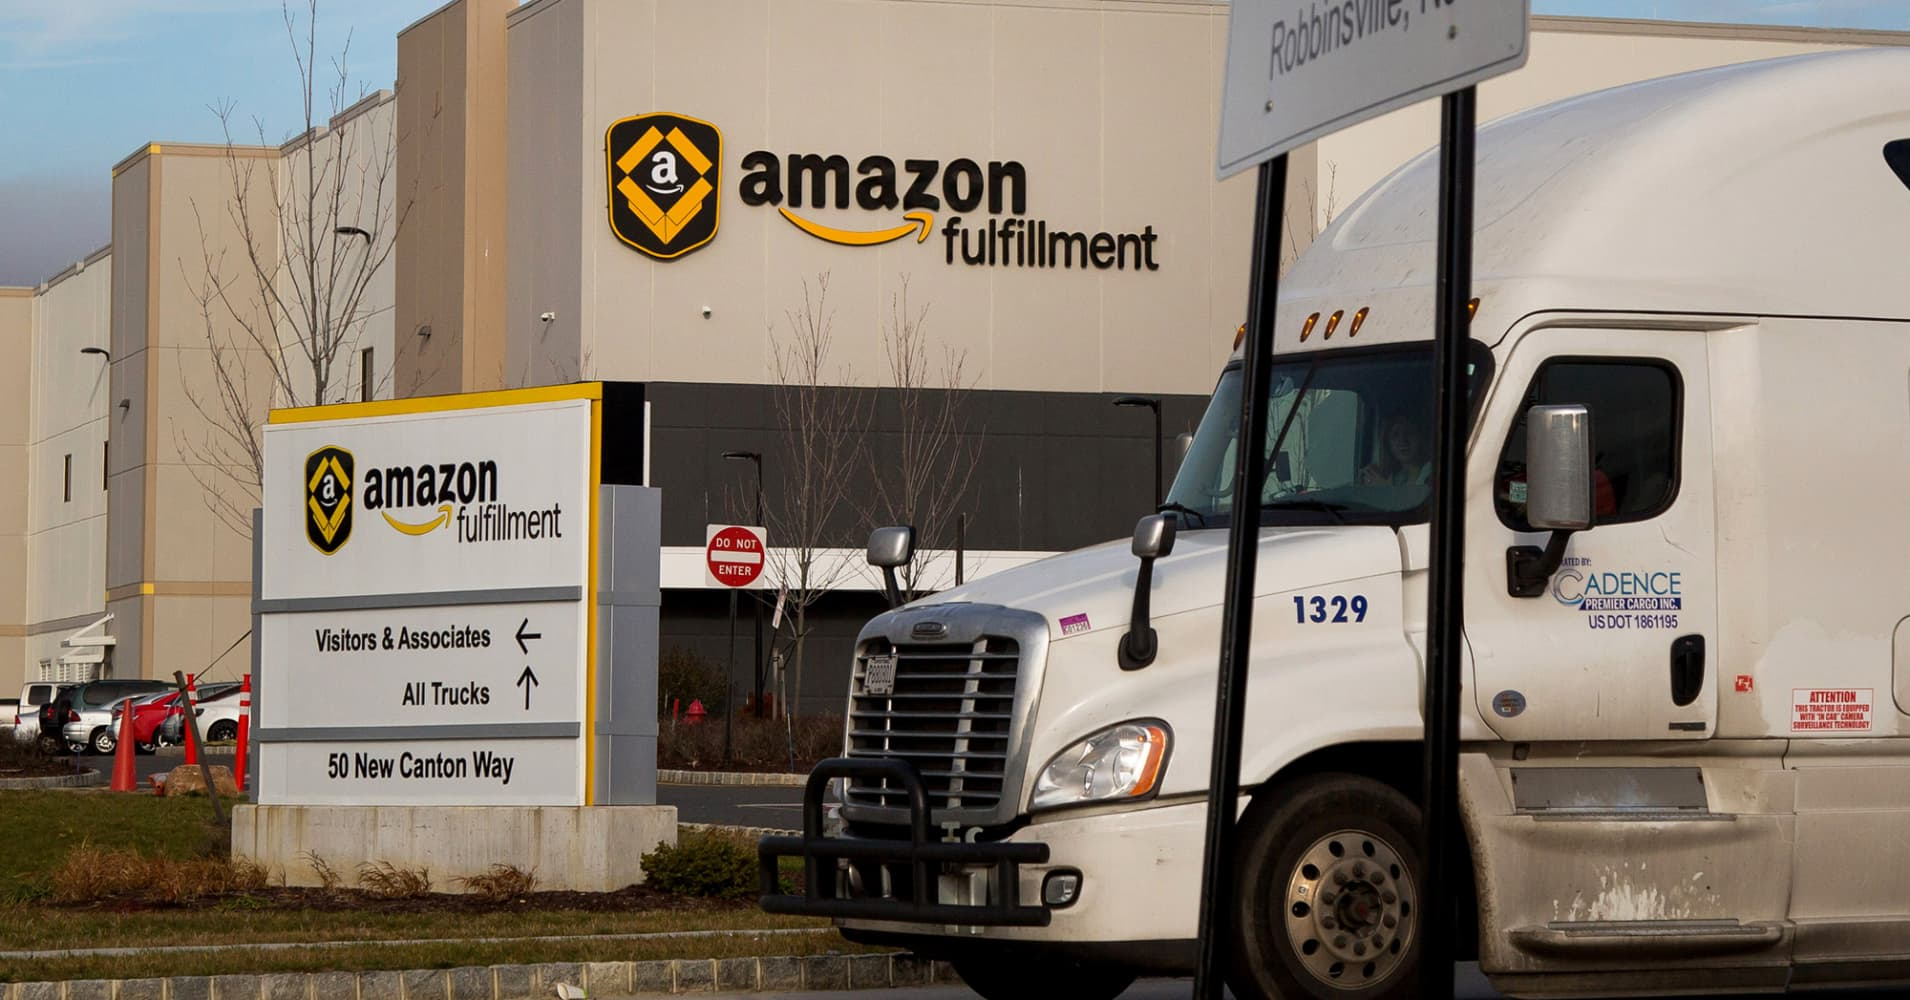 Amazon: Additional deliveries with our own truck fleet